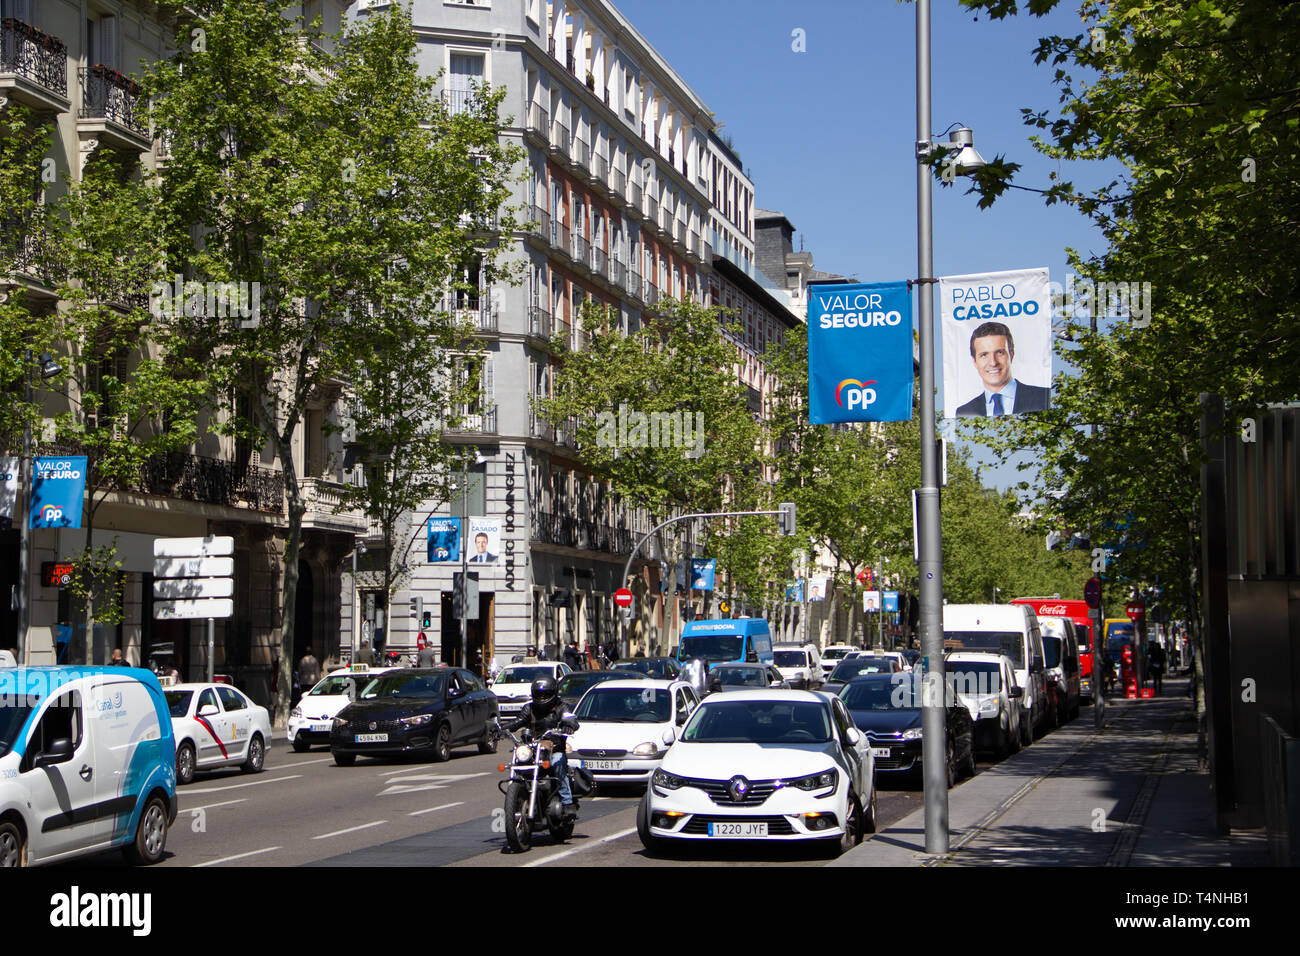 Madrid, Spain - 04 12 2019: Political campaign banners of the Partido Popular, showing their lead candidate for president  Pablo Casado Stock Photo